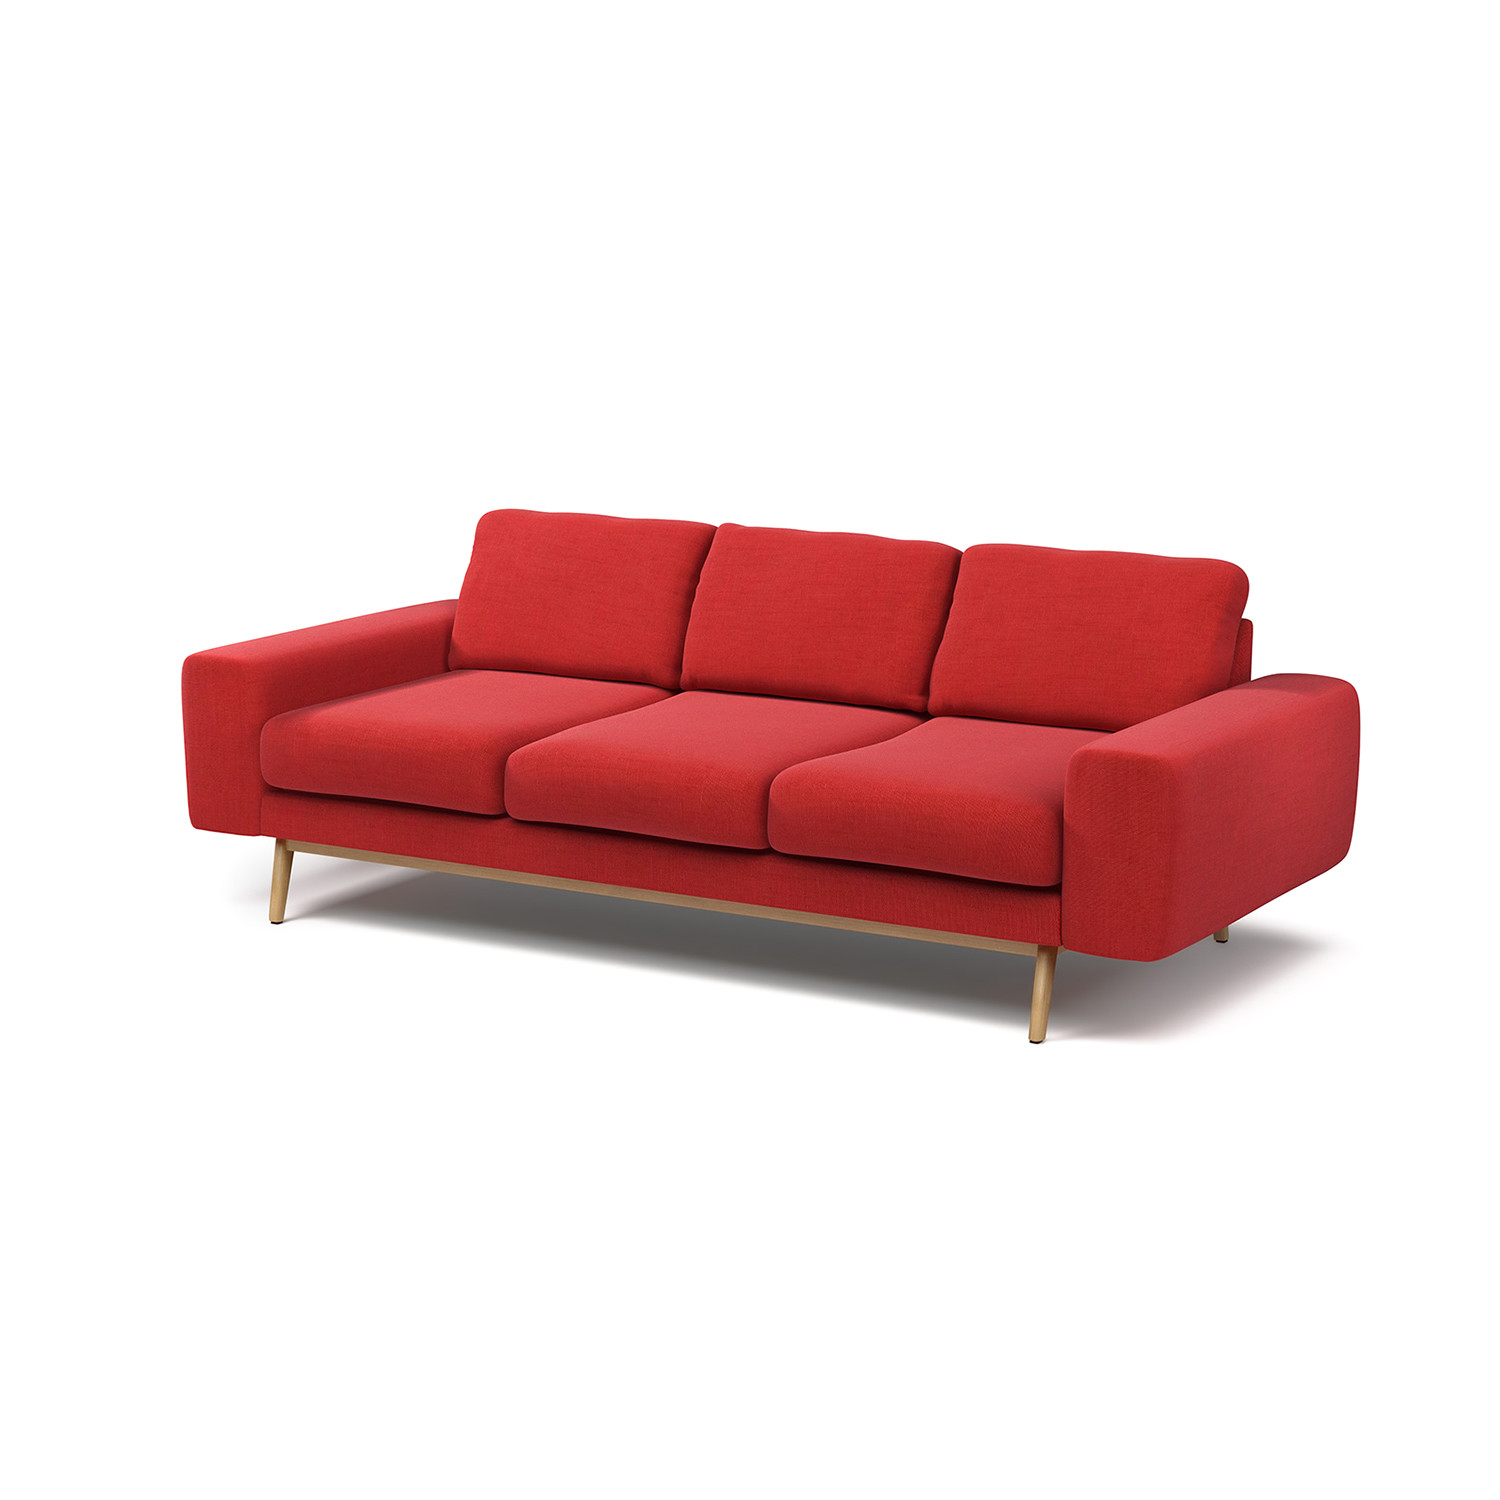 bright colored sofa covers set dealer in delhi anders red urbn touch of modern